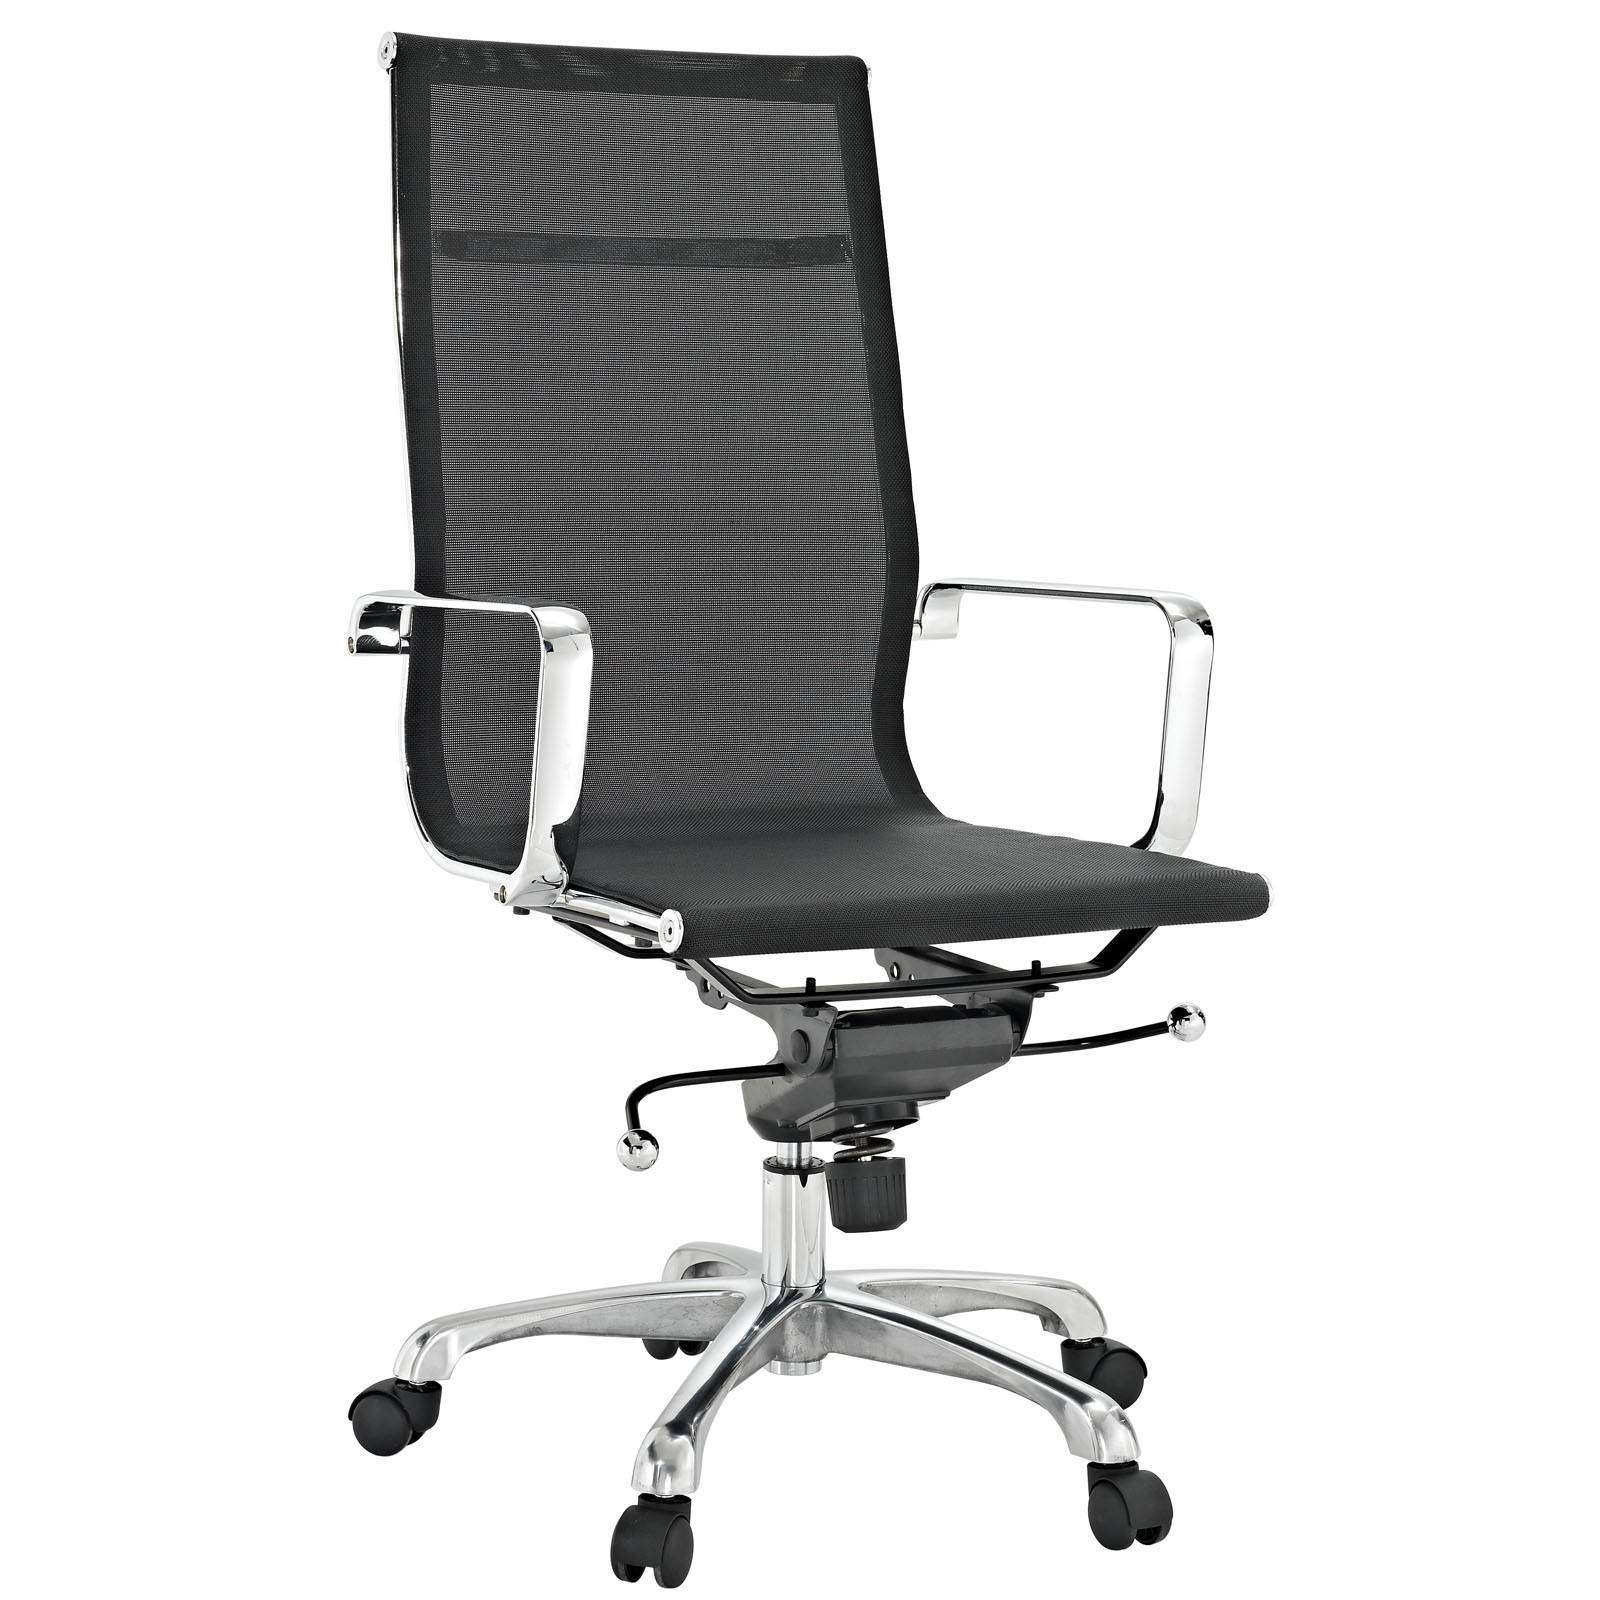 mesh back chairs for office fold out chair bed nz classic slider high